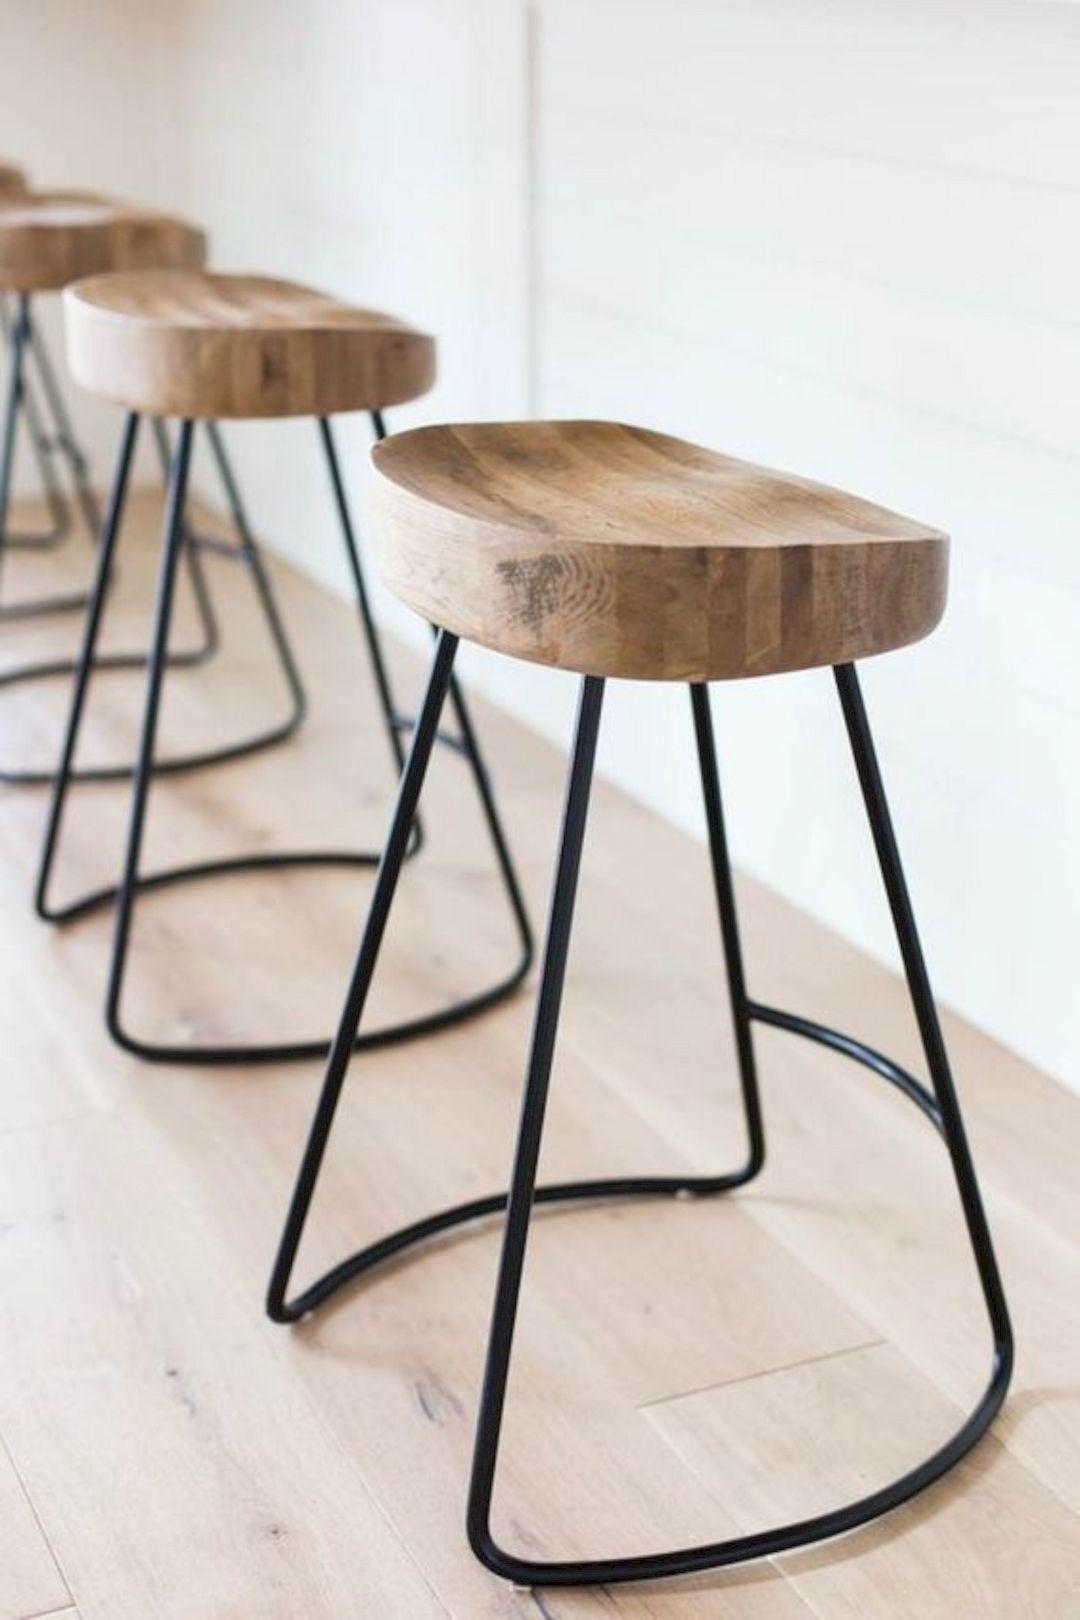 Diy Bar Stools Simple Wooden Stool Designs